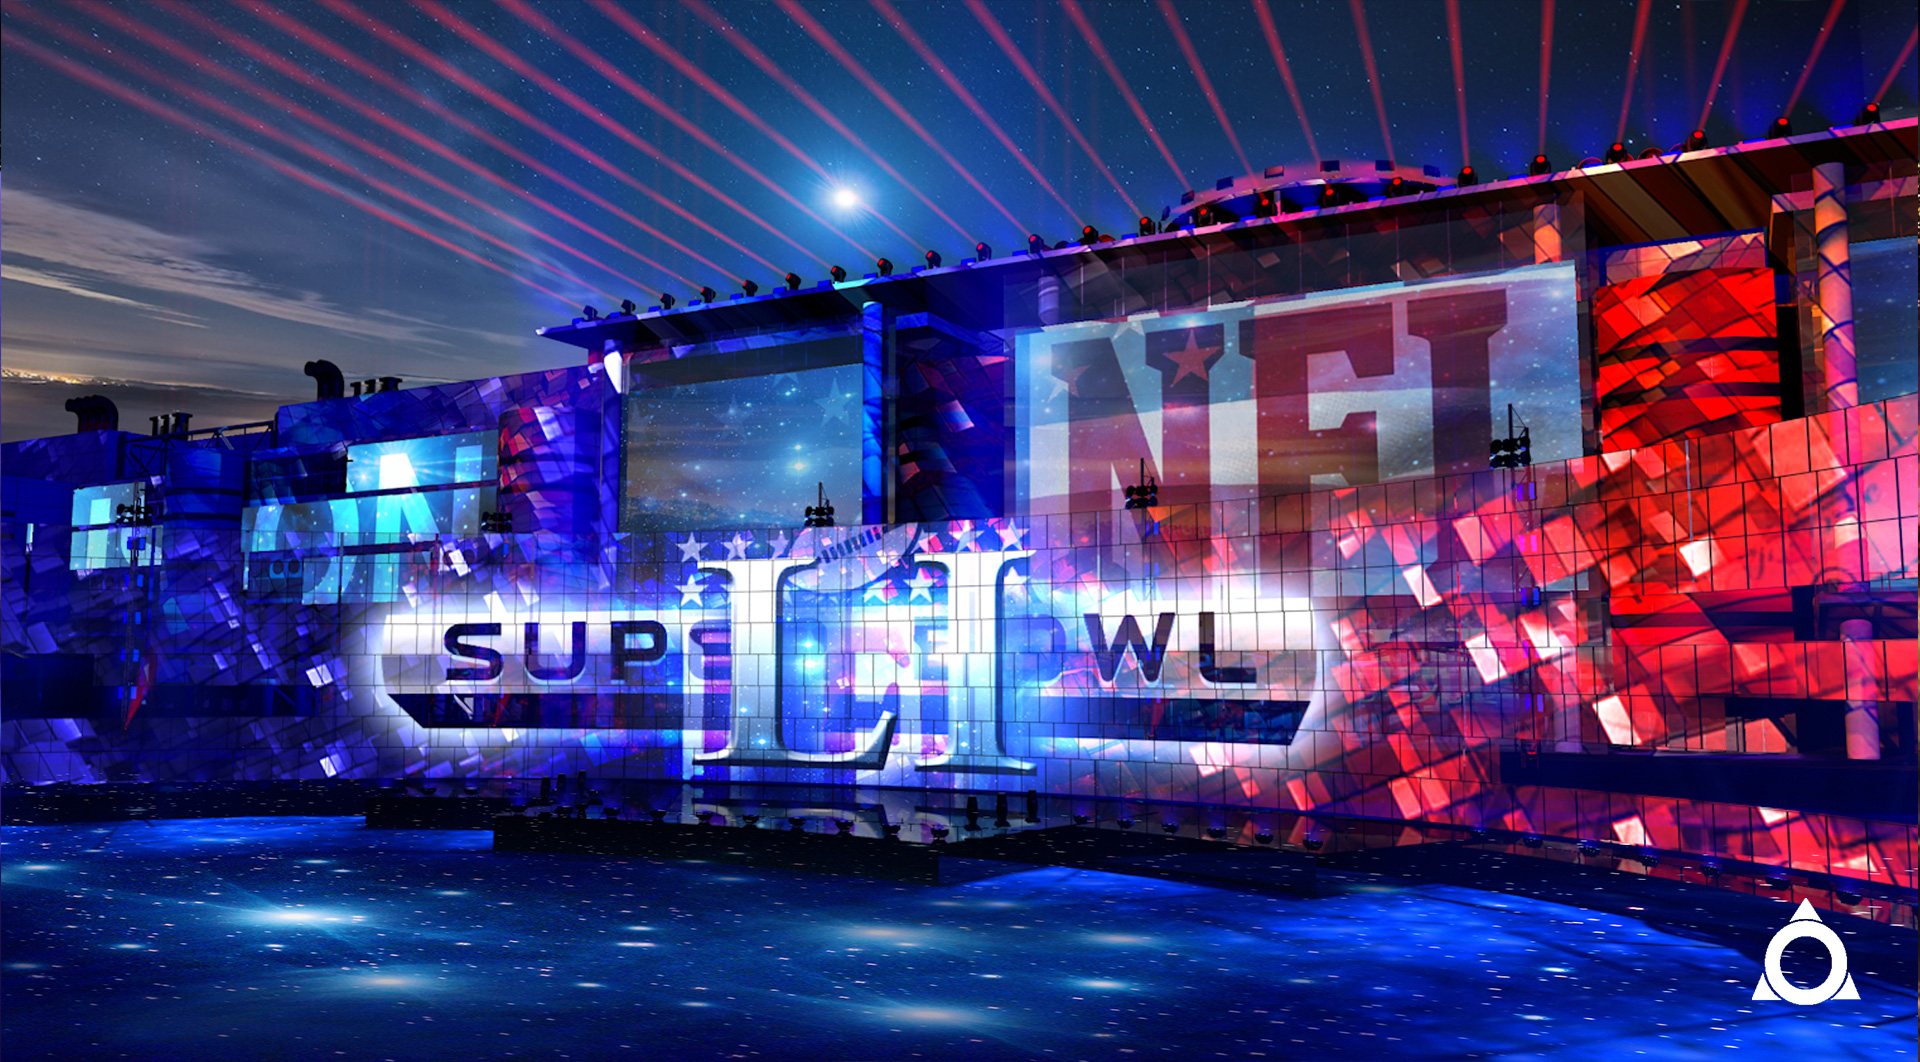 NFL Superball 2017 concept